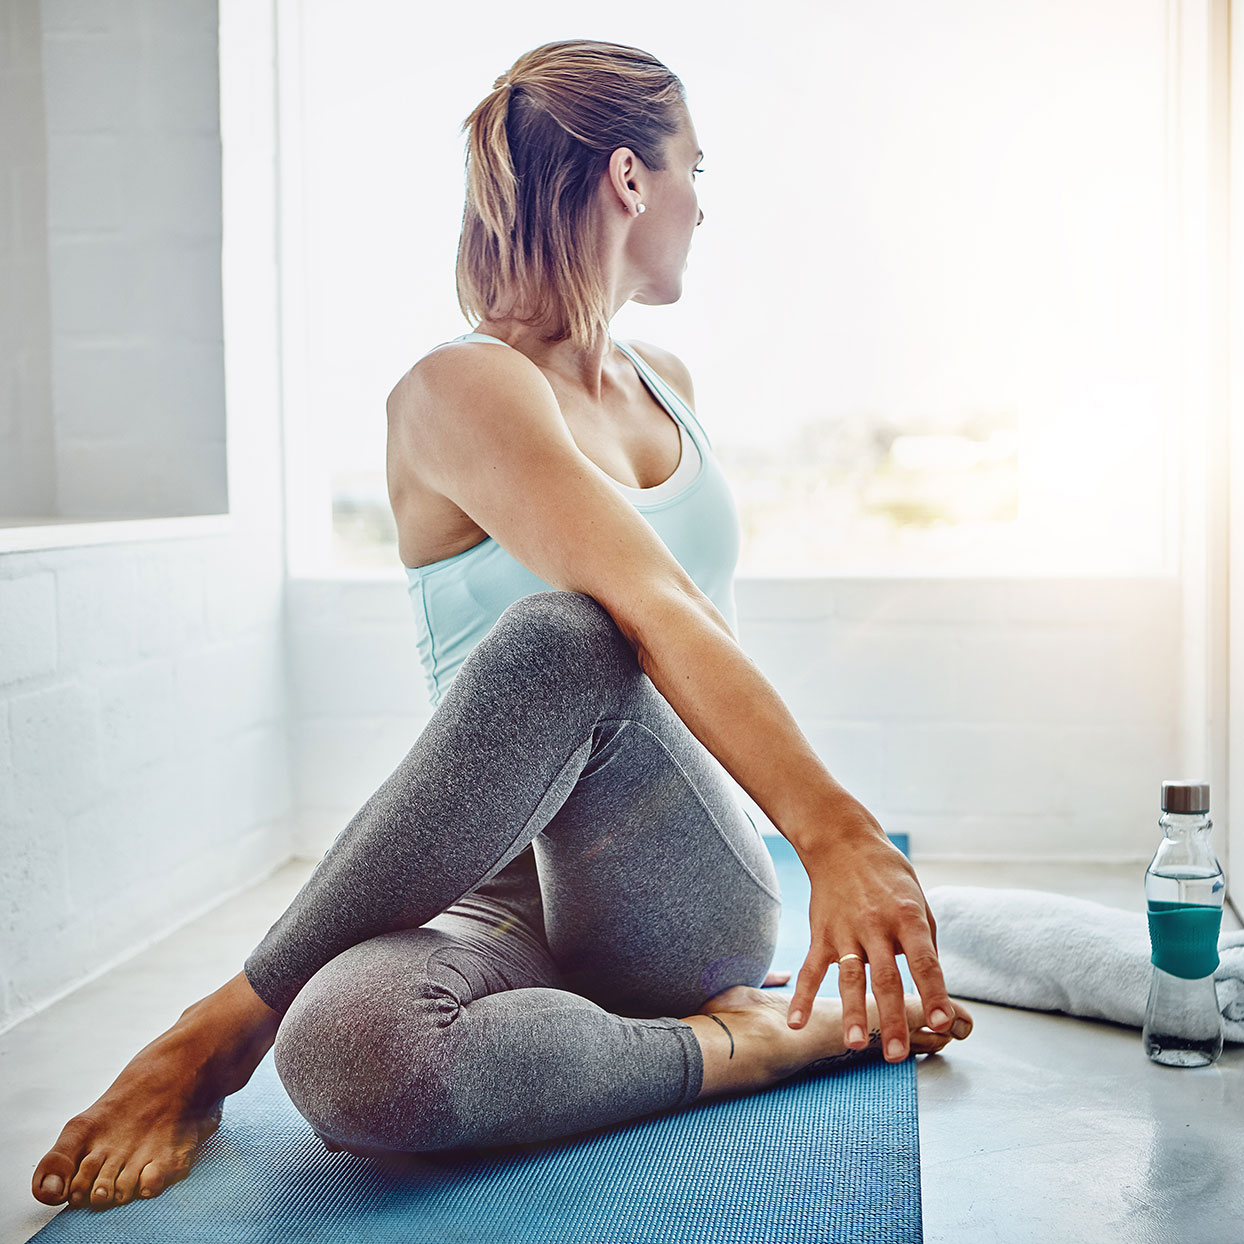 This At-Home PiYo Workout Strengthens and Stretches At the Same Time